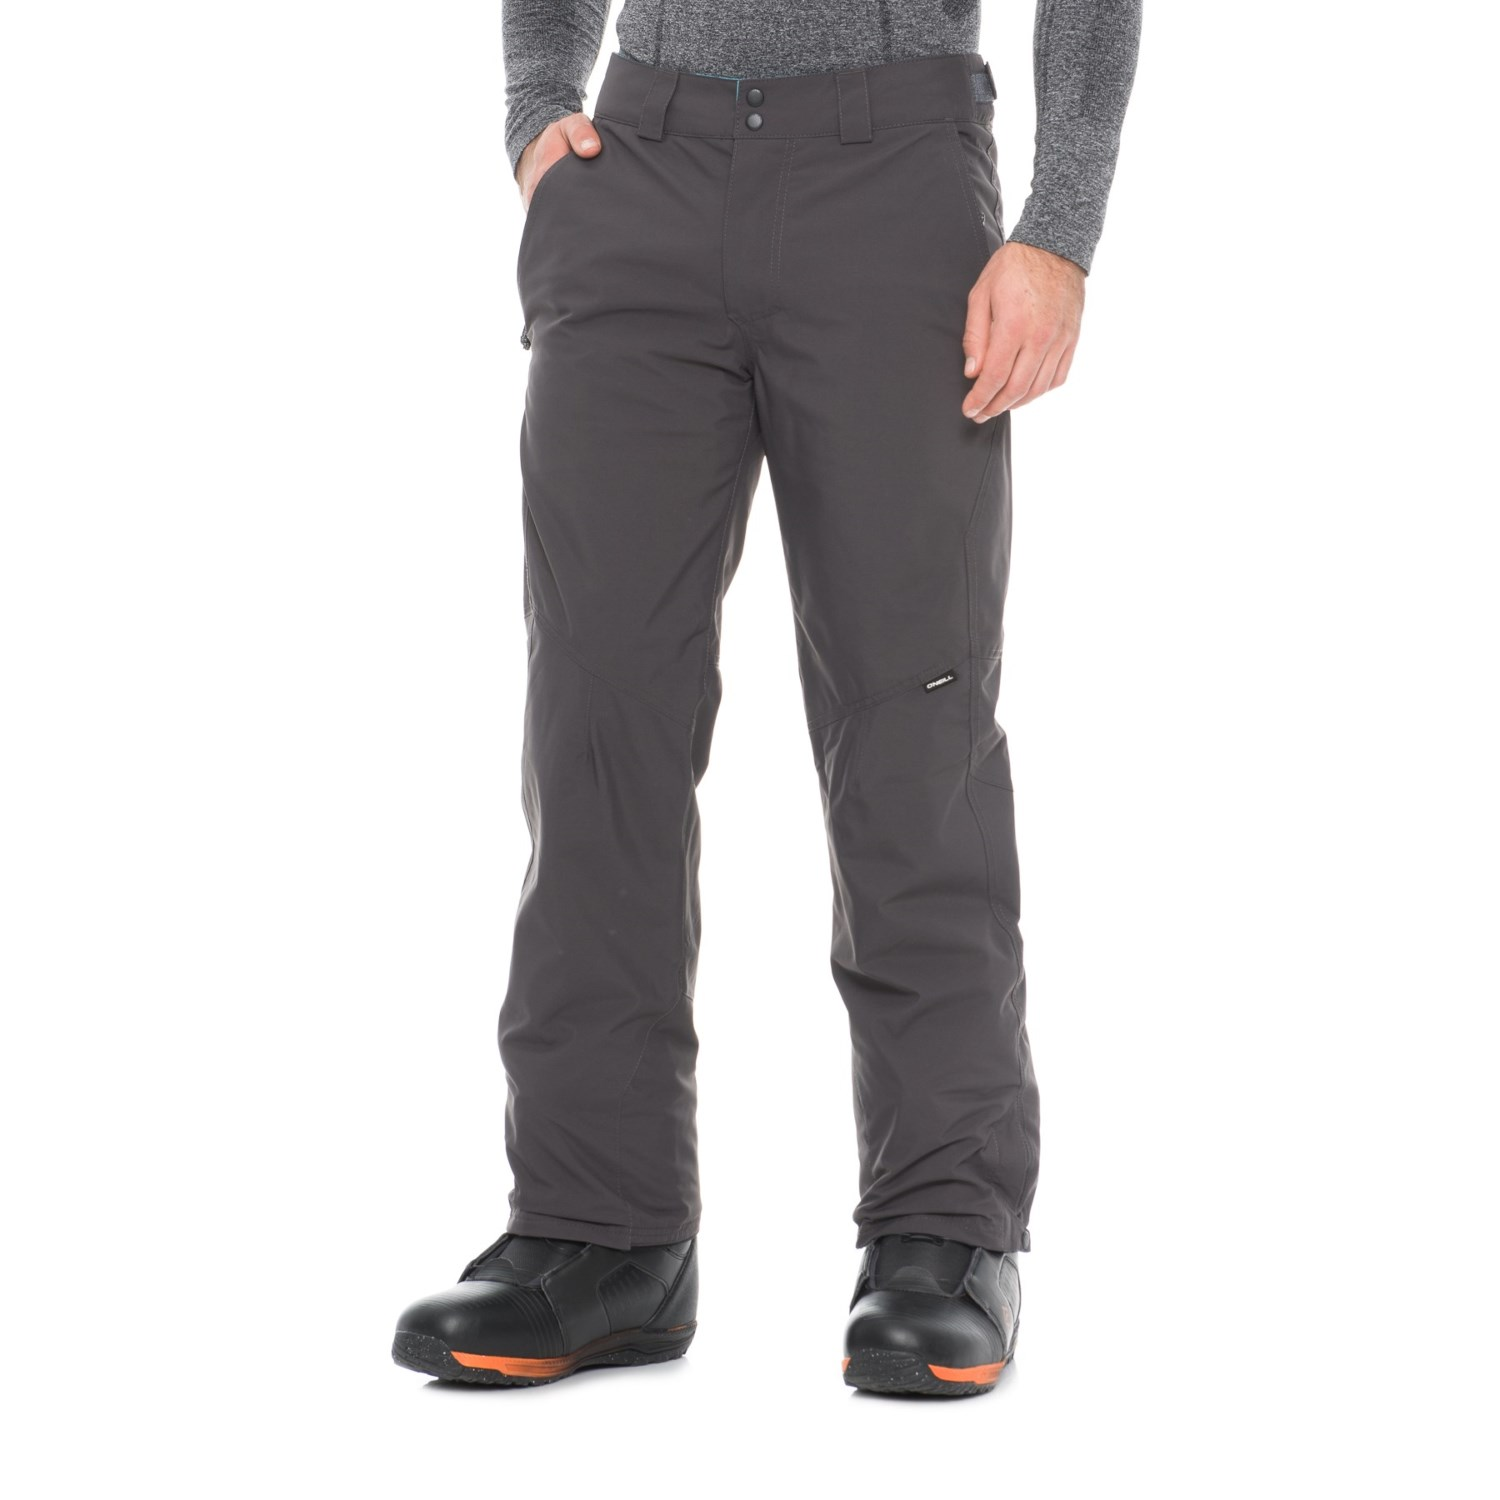 To acquire Pants hammer for men picture trends